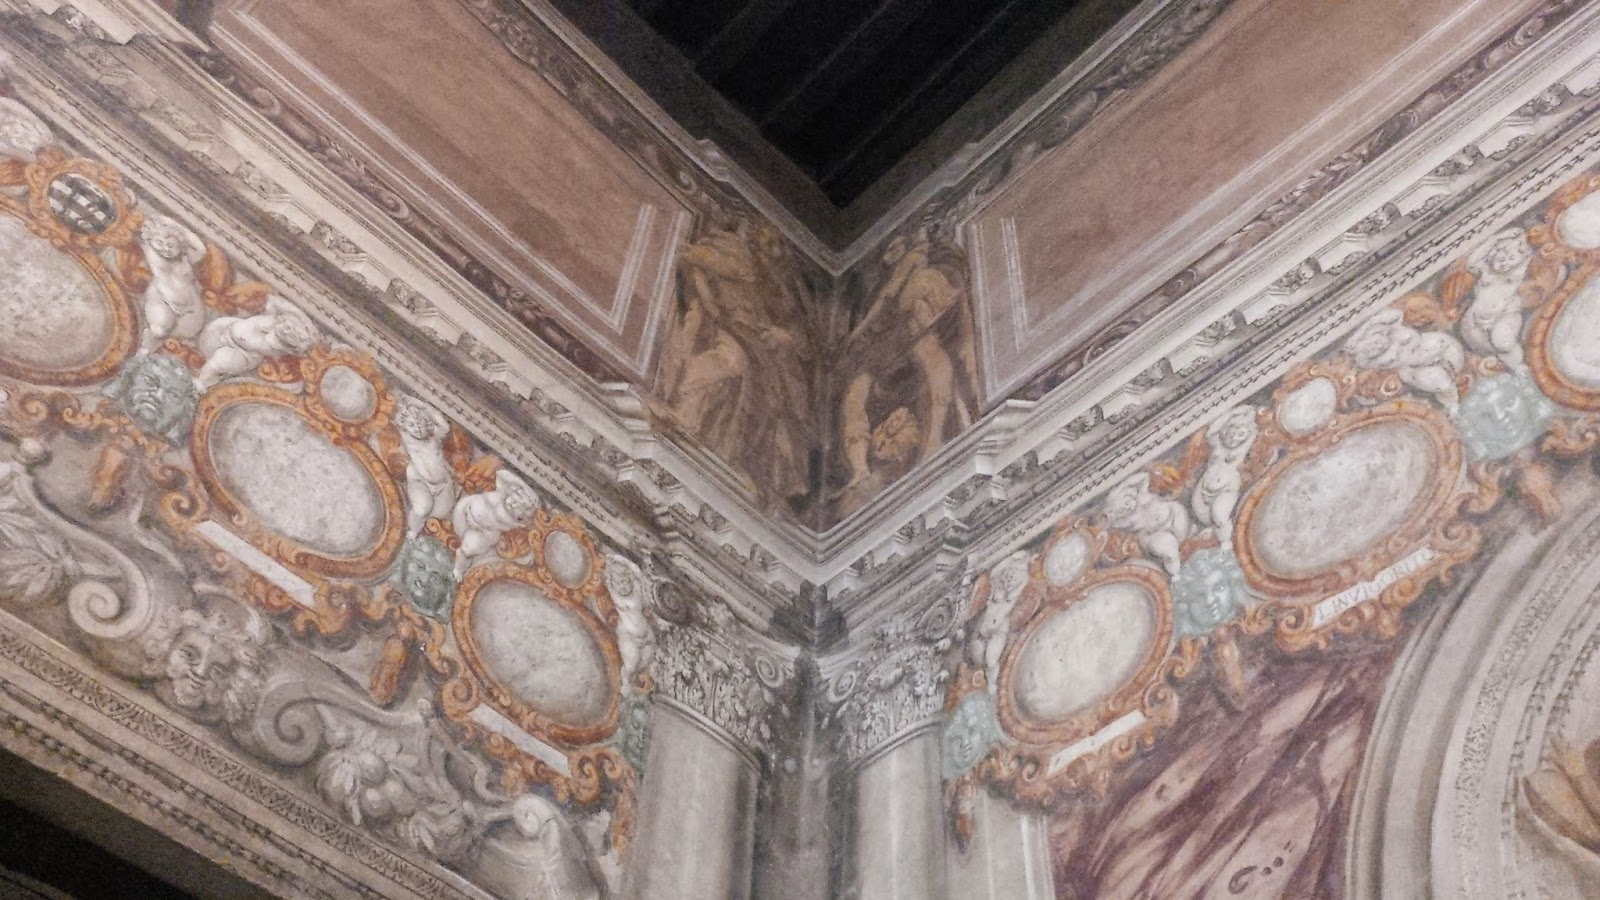 A detail of the richly painted walls of the antechamber of Teatro Olimpico in Vicenza